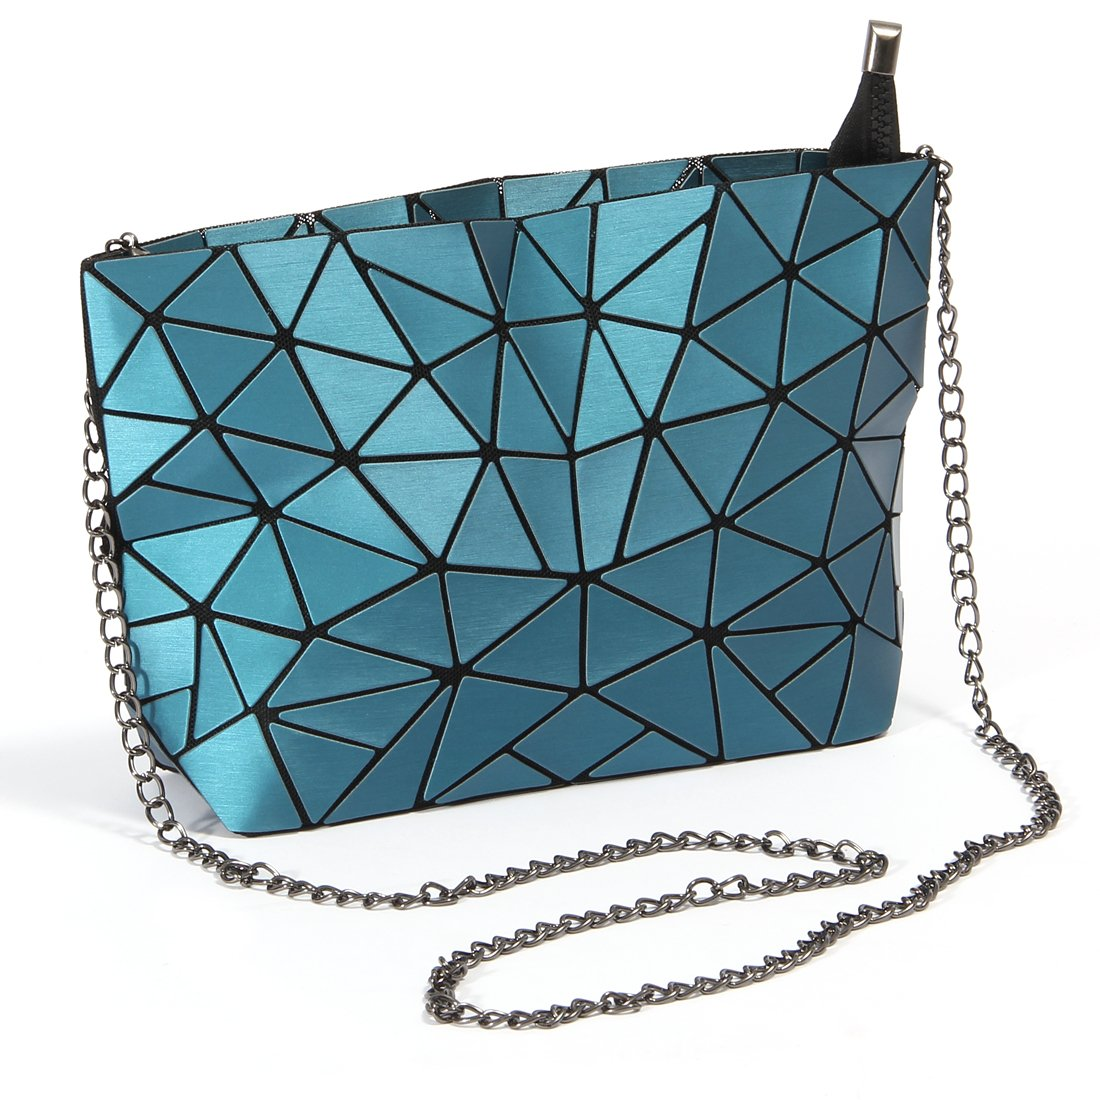 HotOne Fashion Rainbow Shoulder Bag Geometric Gradient Colorful PU leather Womens Handbag (Blue)